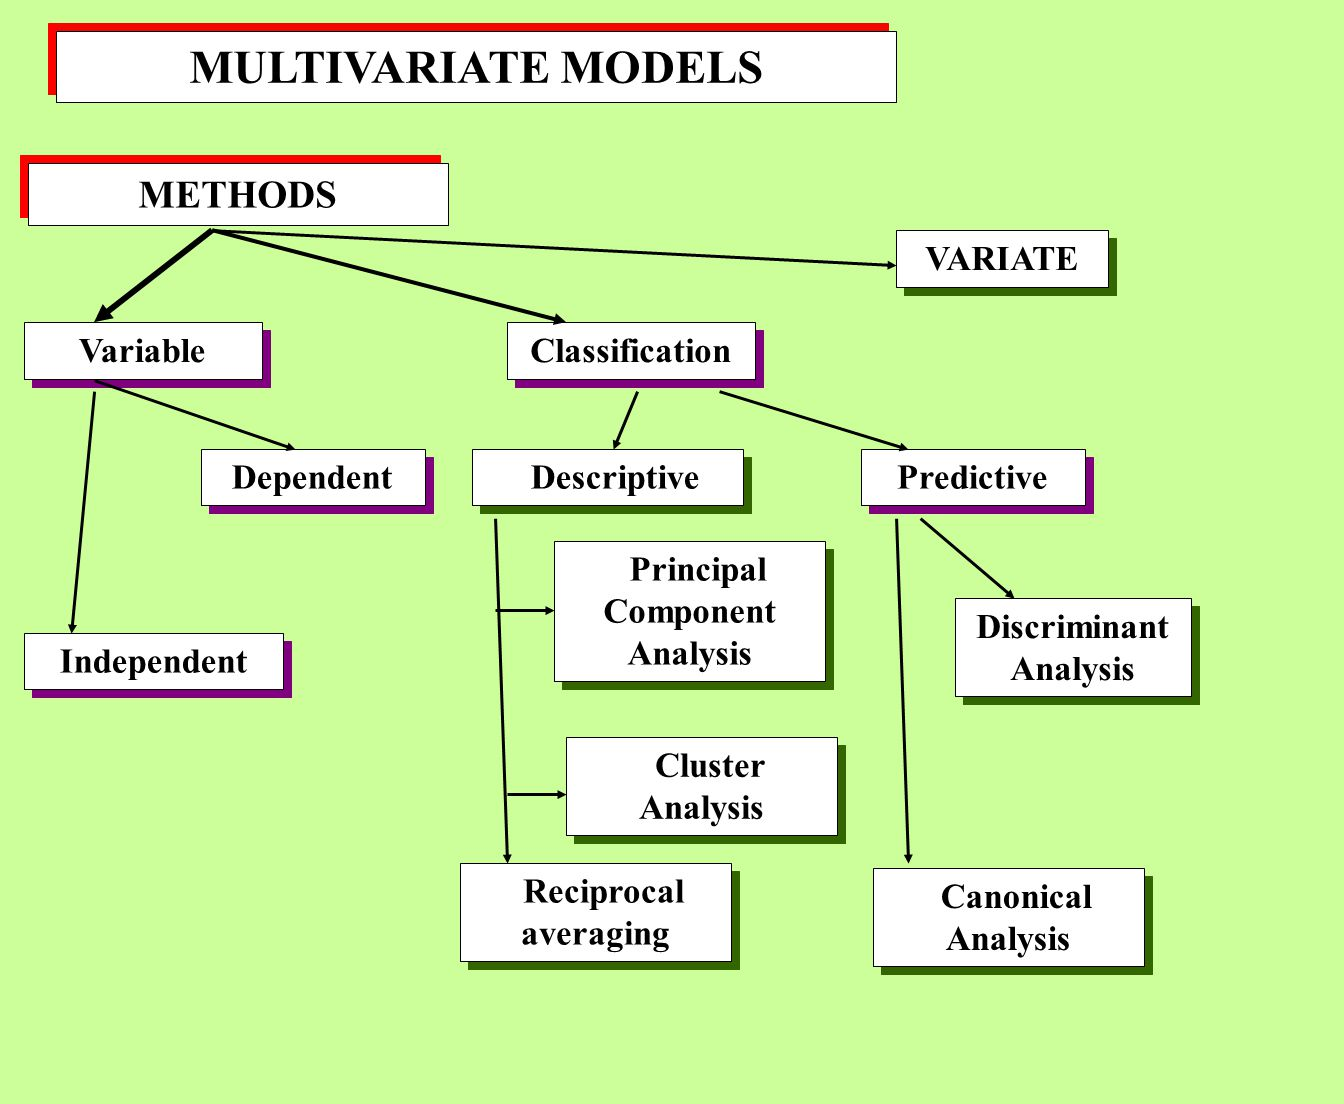 MULTIVARIATE MODELS METHODS Variable Classification Independent Dependent Descriptive Predictive VARIATE Principal Component Analysis Cluster Analysis